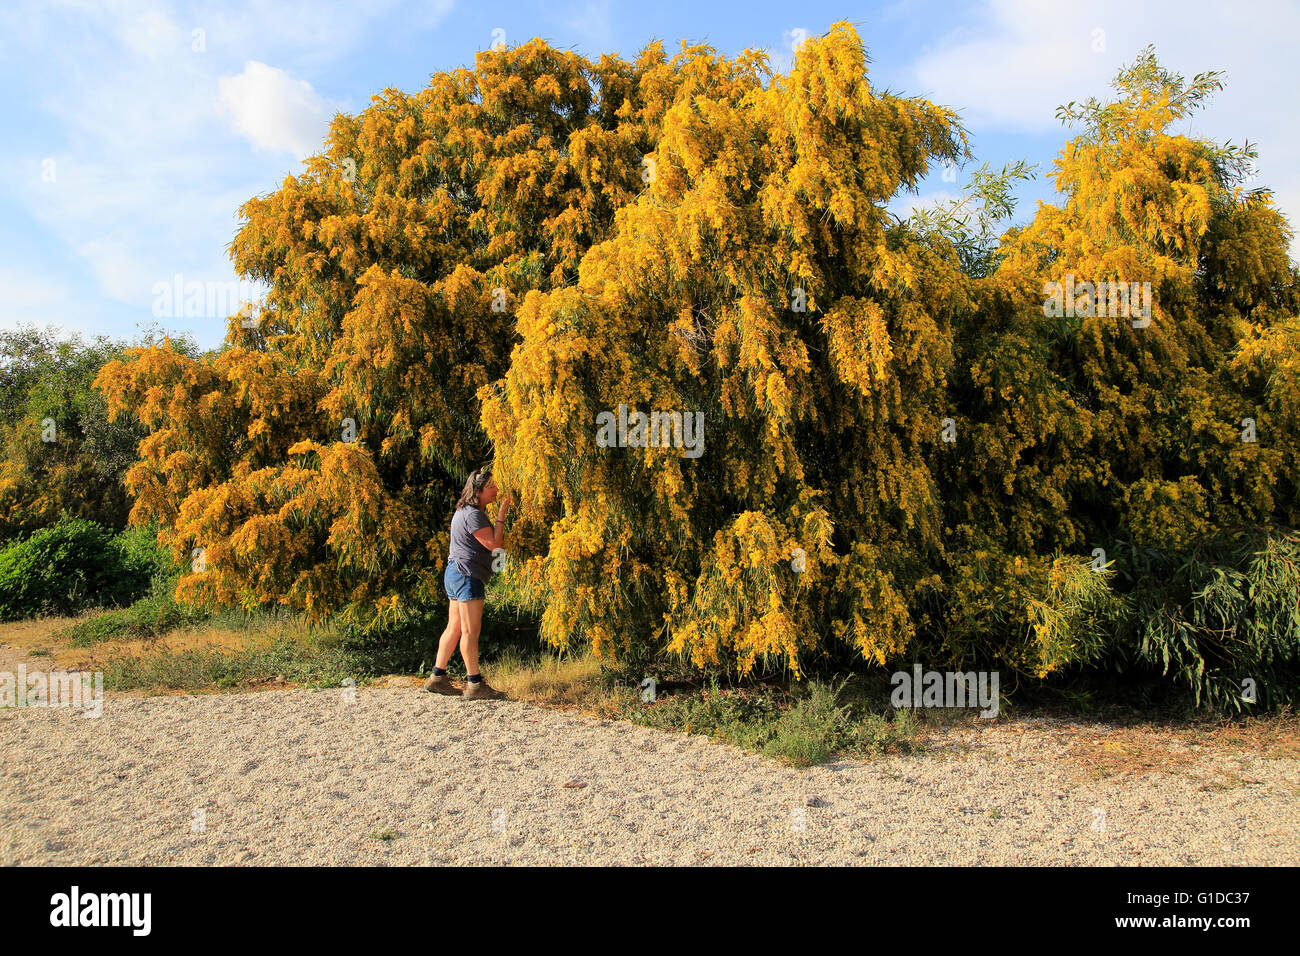 Mimosa Tree Spain Stock Photos Mimosa Tree Spain Stock Images Alamy